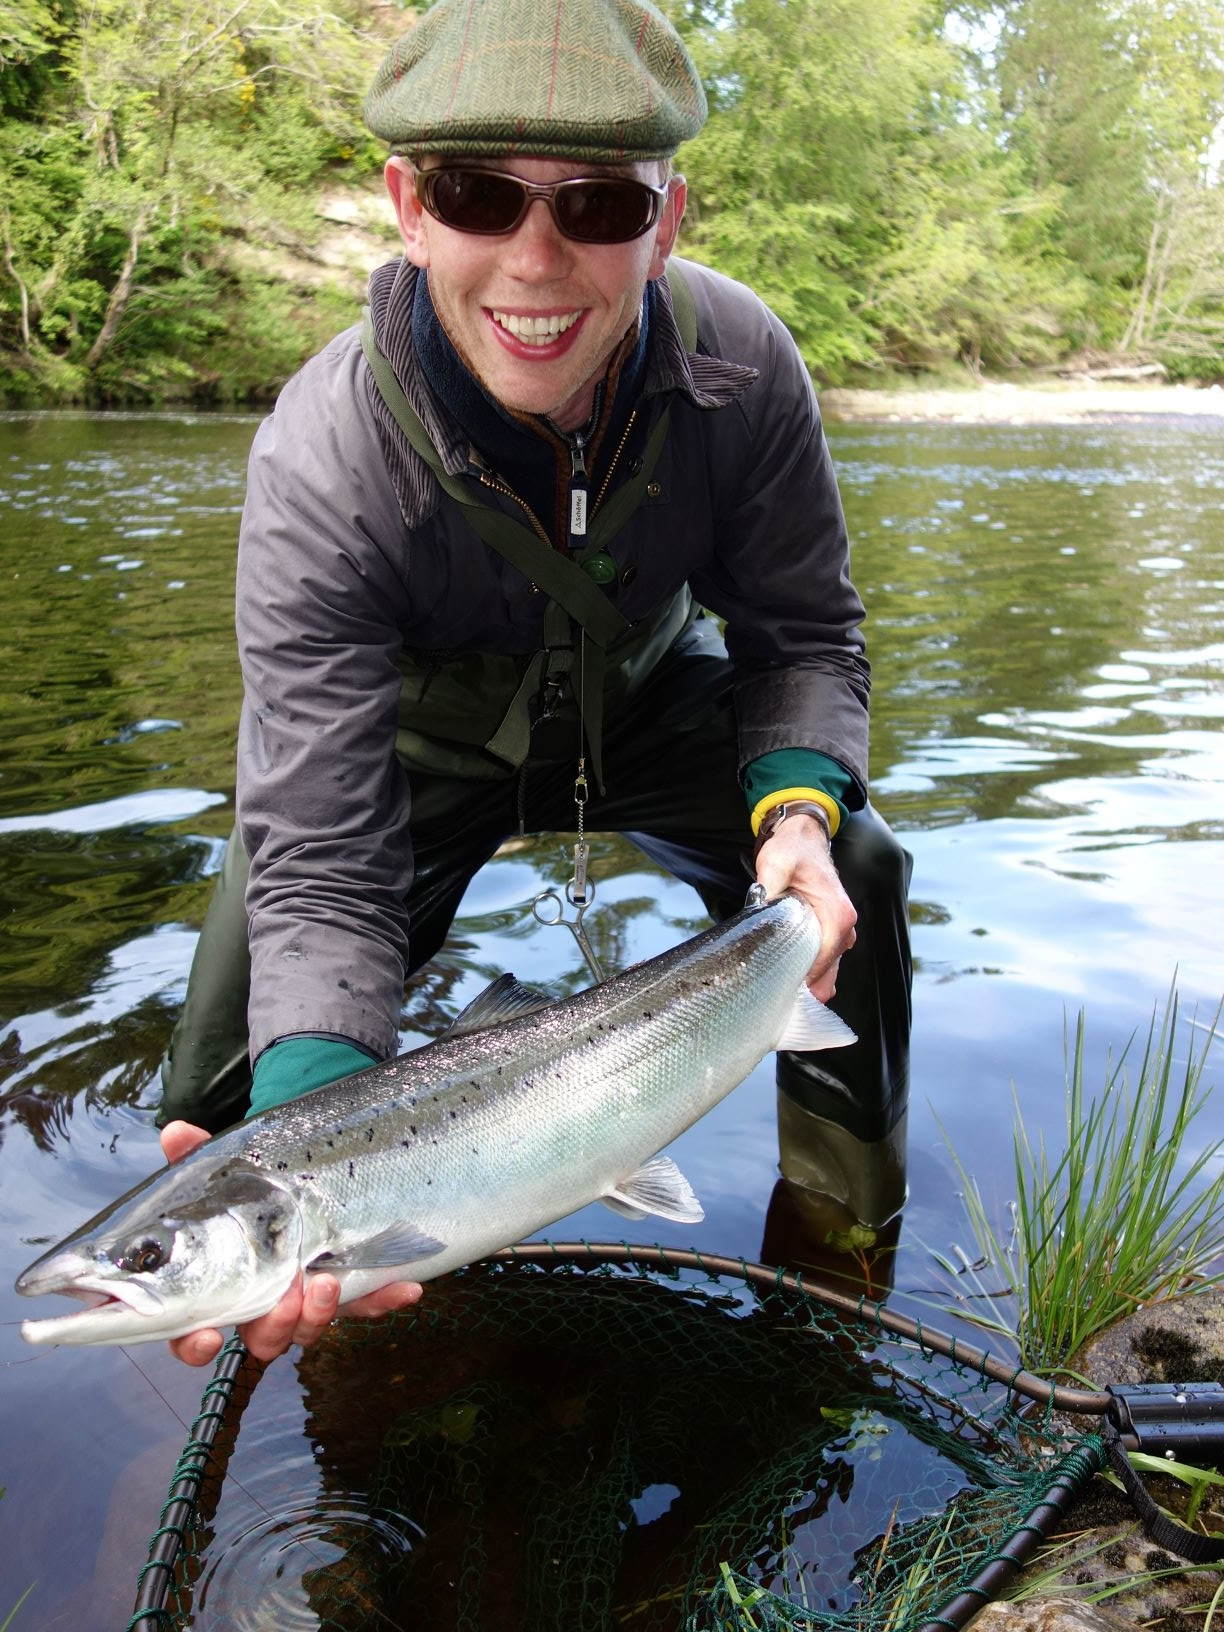 Fred Wheeler-Booth with his first River Findhorn salmon of around 8 lbs. from Roehillock Pool, Altyre Estate